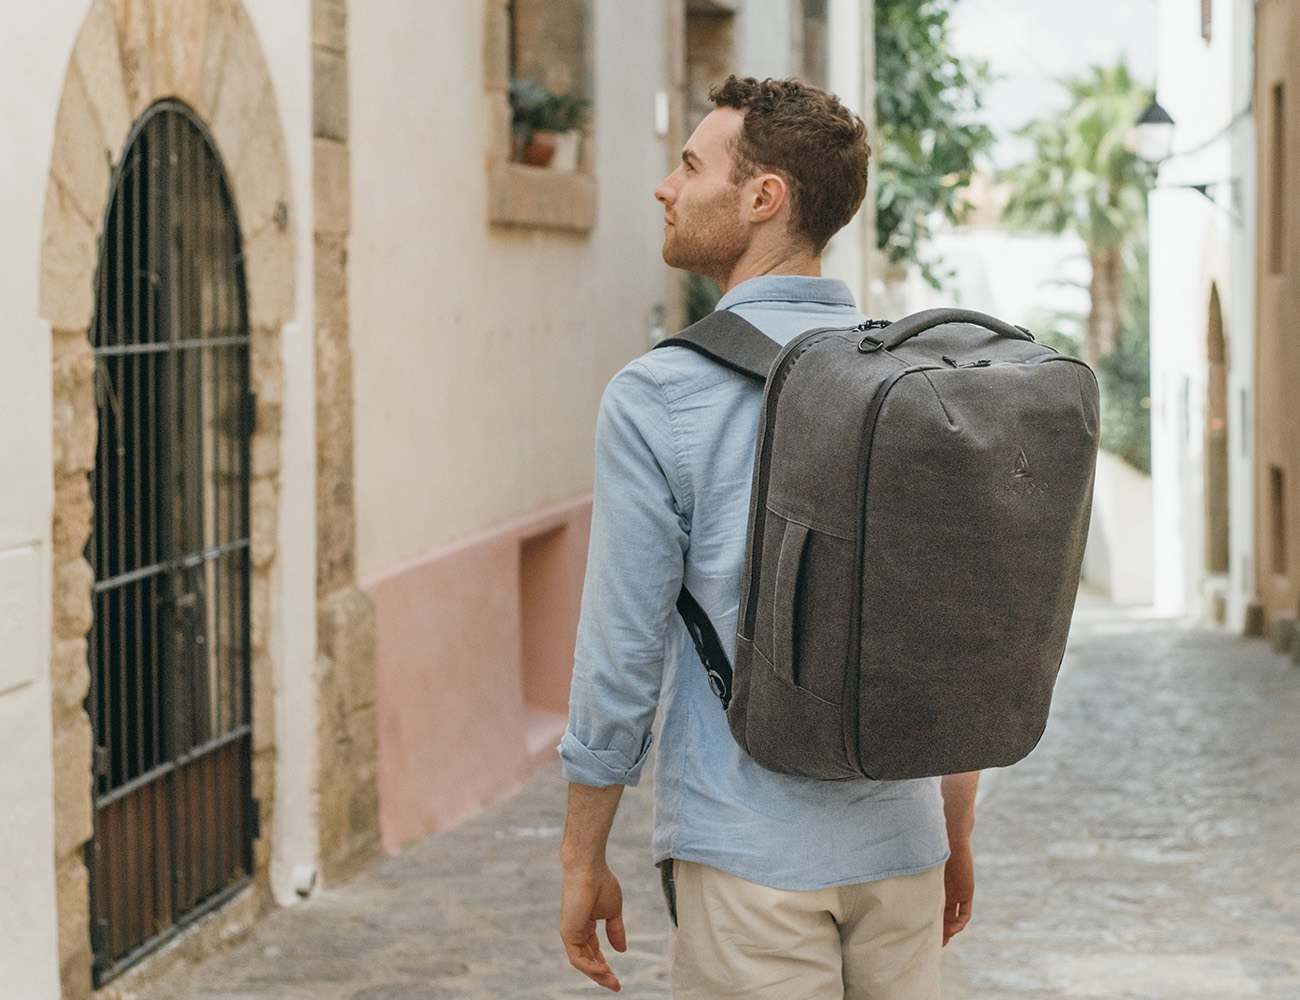 The+Arcido+Bag+%26%238211%3B+Smarter+Carry-on+Travel